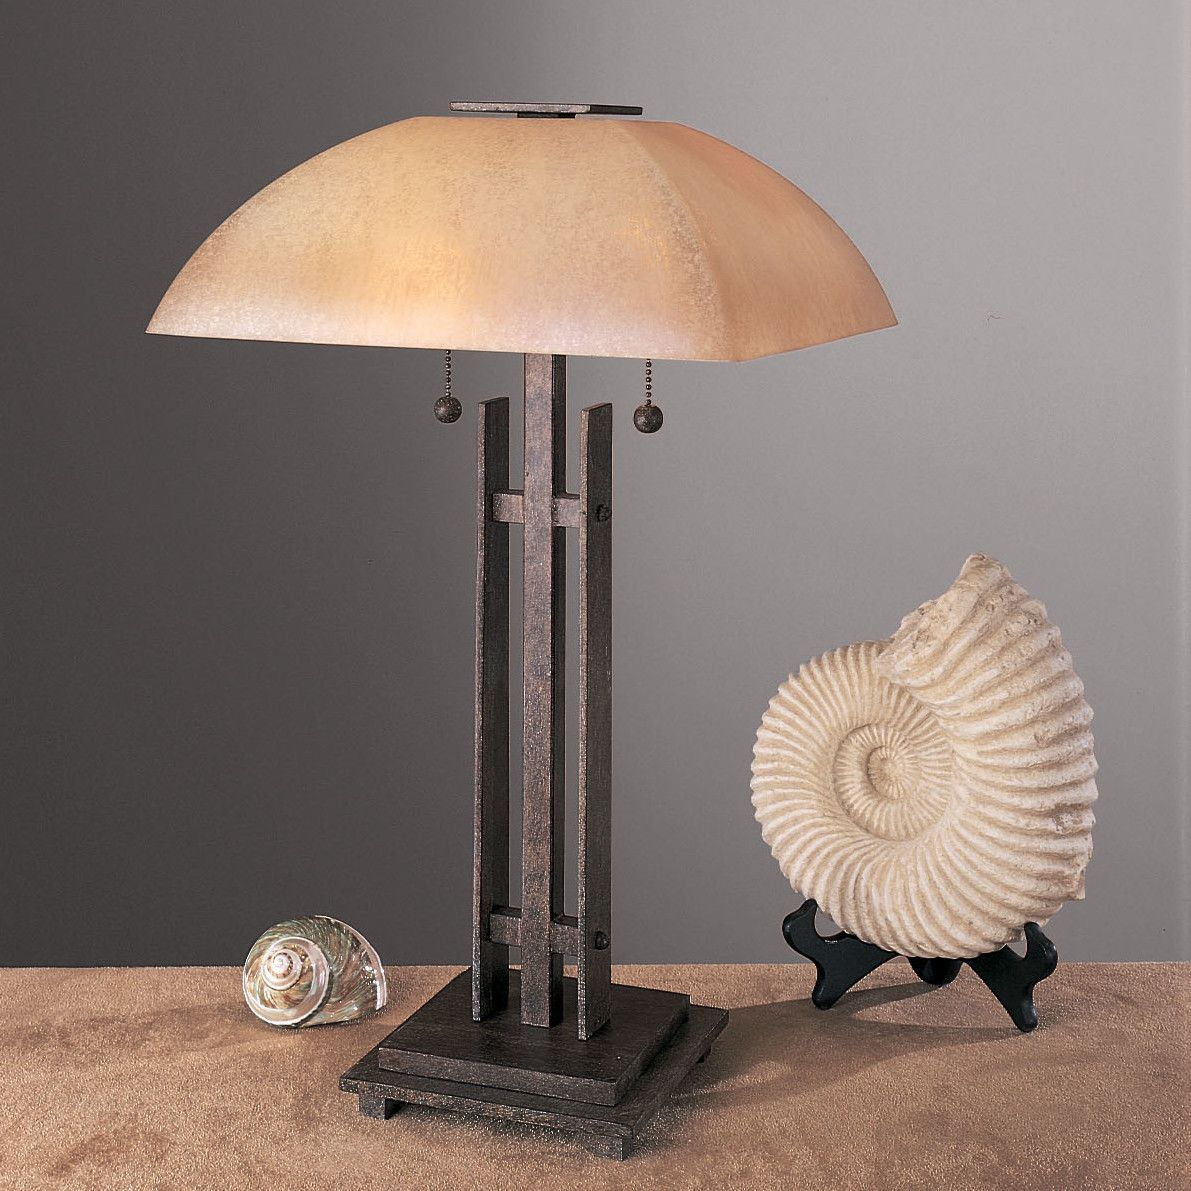 Lineage 2125 table lamp tables minka and table lamps lamps minka lavery lineage 2125 table lamp geotapseo Choice Image